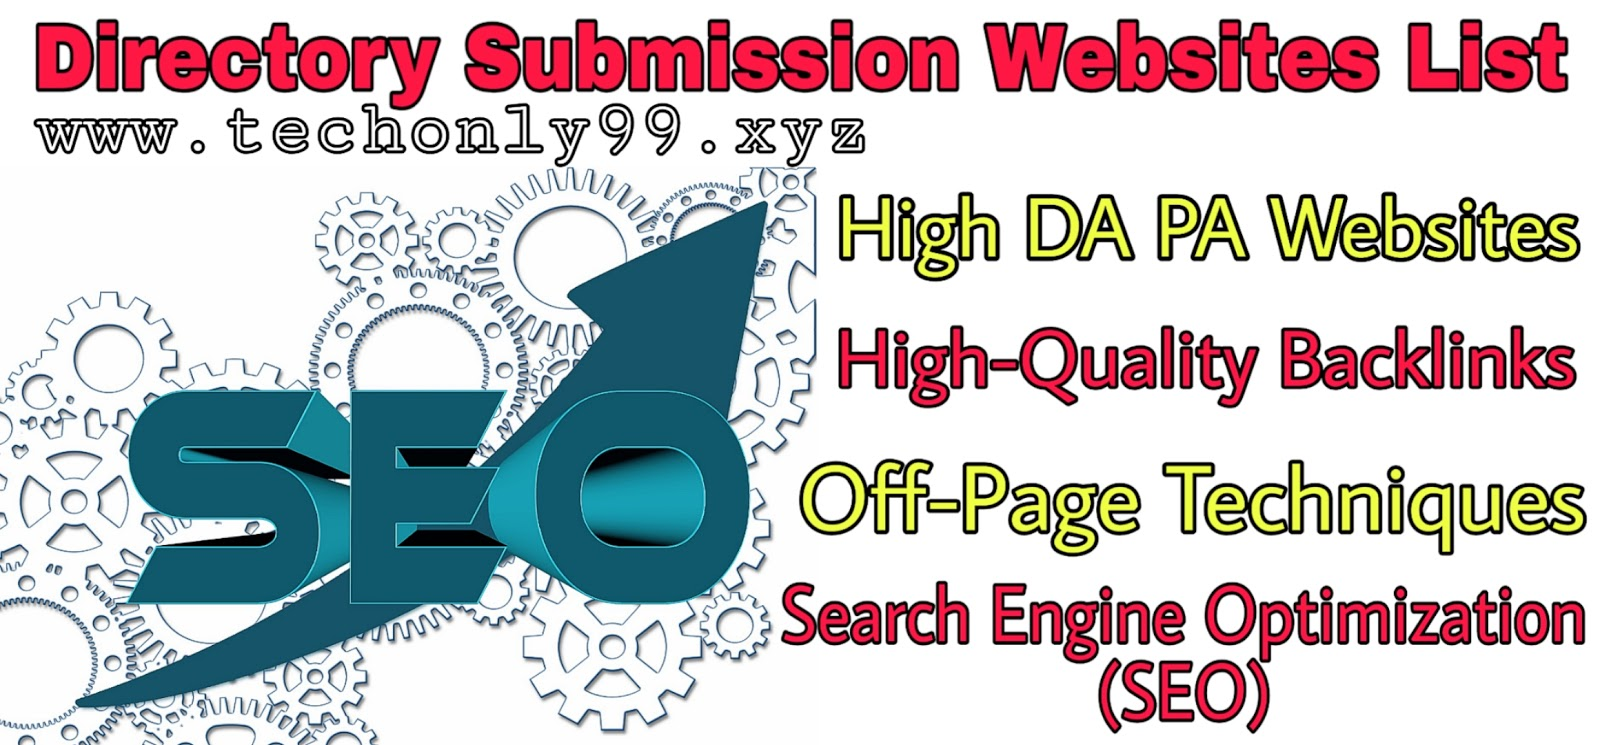 150+ Free High DA PA Directory Submission Websites list in 2020